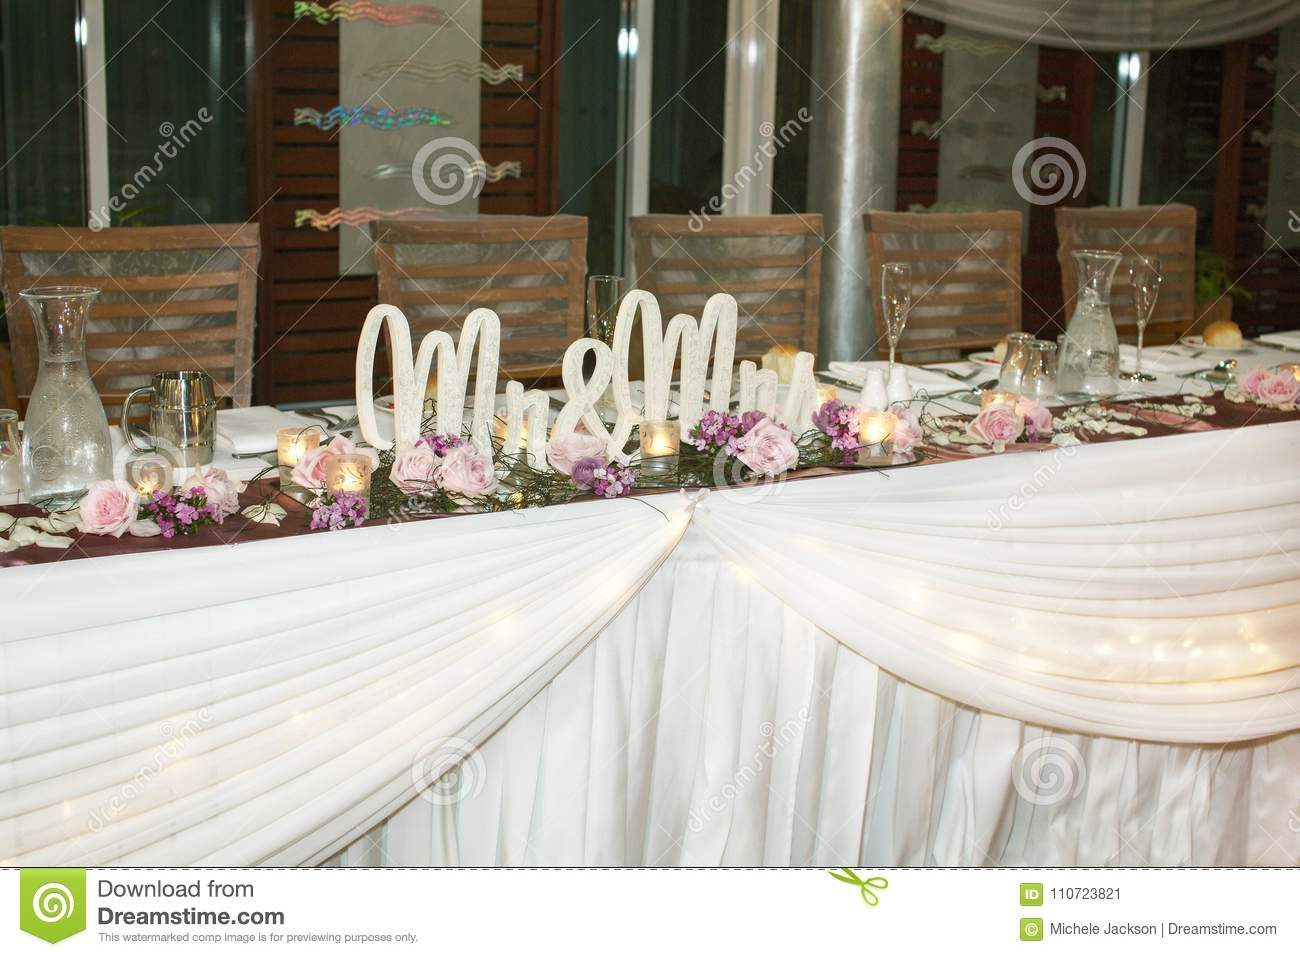 Wedding Reception Decor And Set Up Stock Image - Image of letters ...